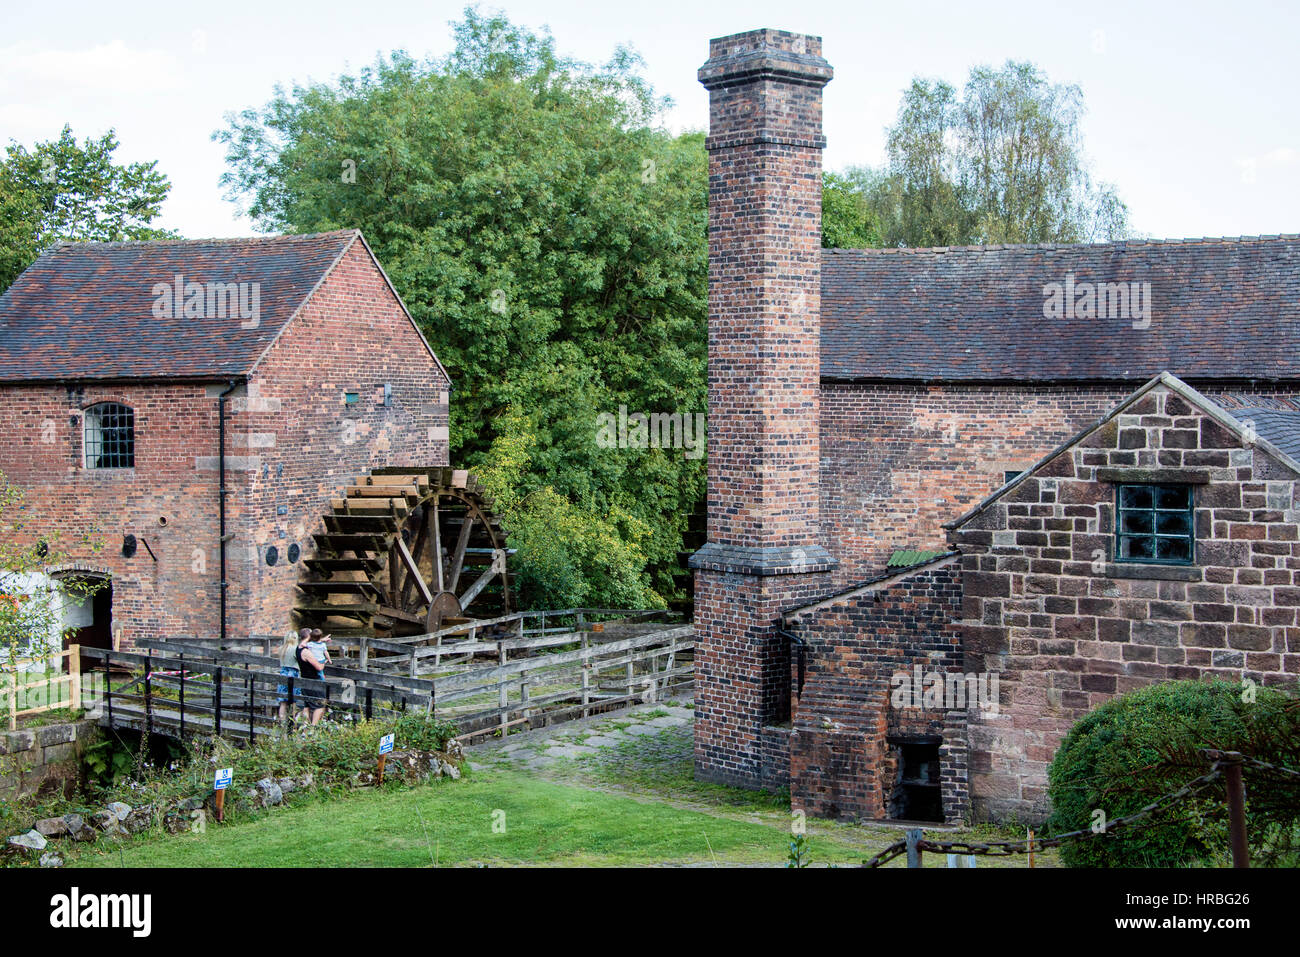 Buildings of the Cheddleton Flint Mill, Staffordshire, UK - Stock Image